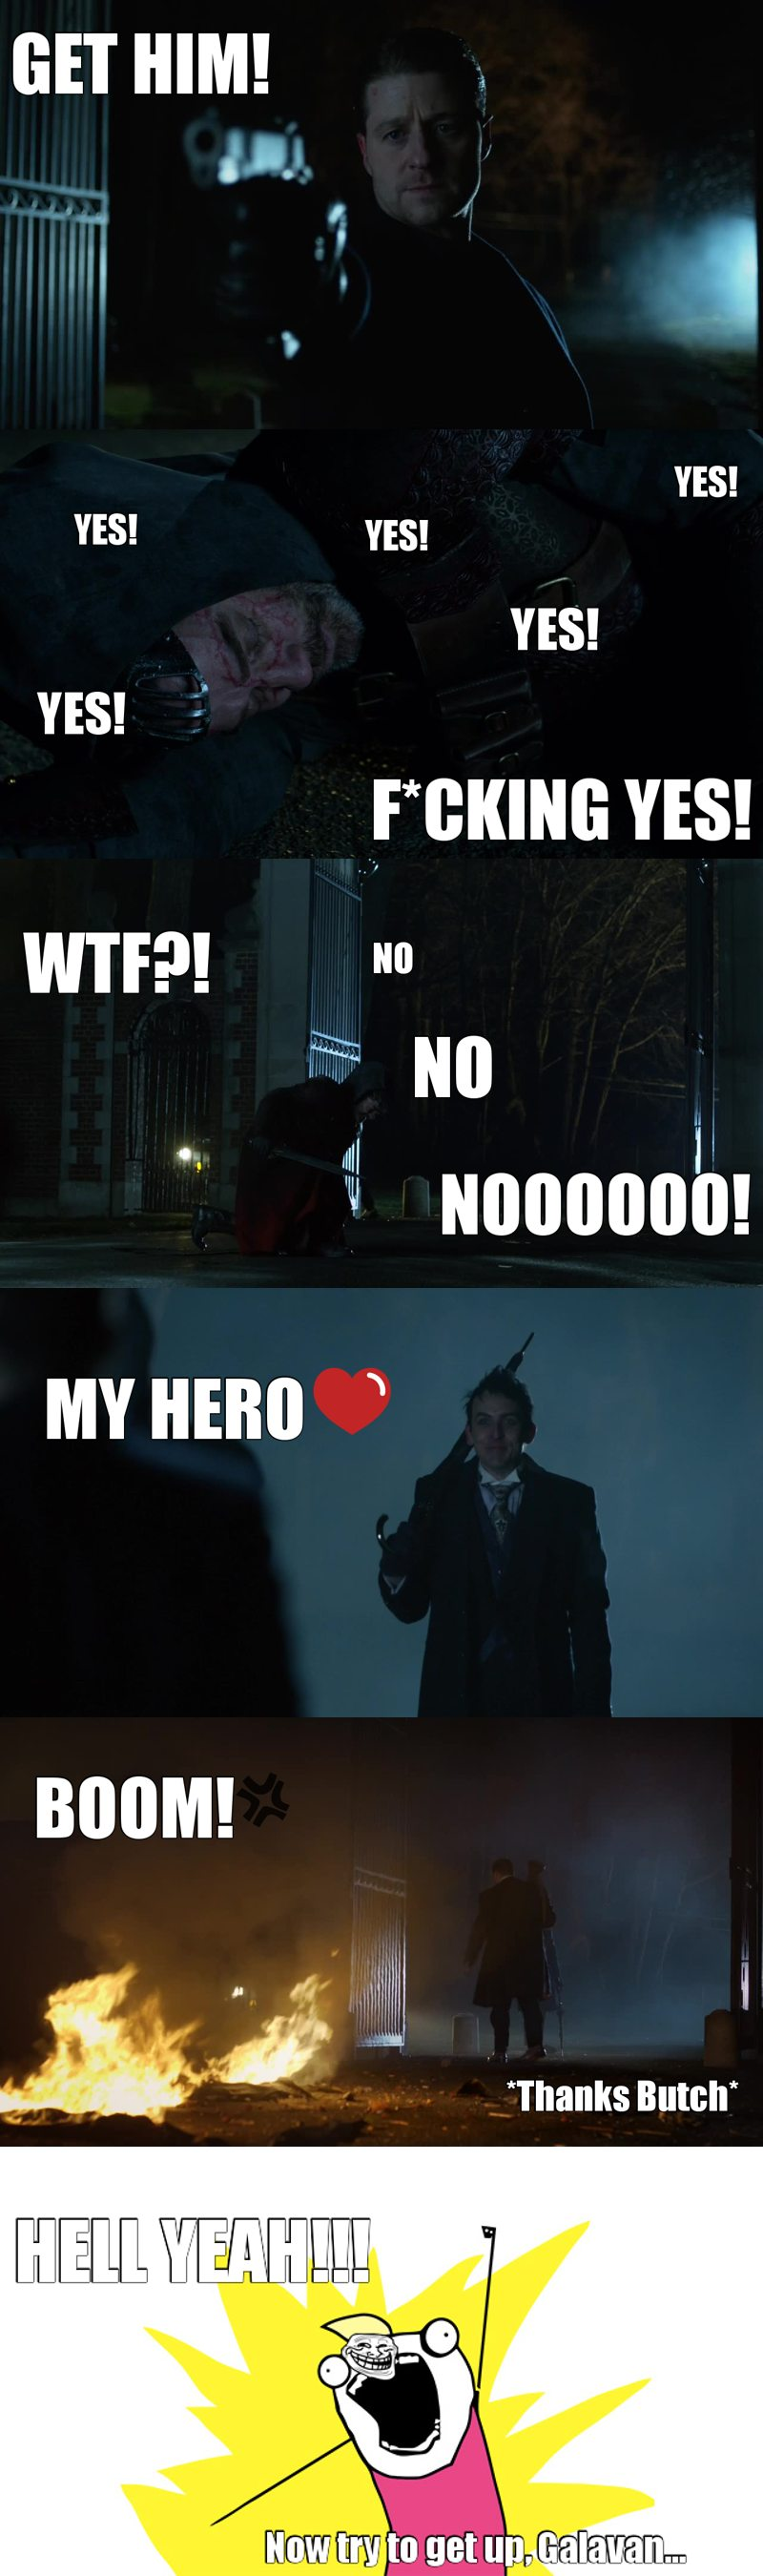 OH. MY. GOD!! I was getting so mad, Jerome is dead, Penguin's mother too and this shit of Galavan waltzing around Gotham at his ease, I couldn't believe it!!! and then Jim shot him almost a thousand times and he was still alive, COME ON!!!! Thank god my beloved-badass Penguin finished him off in a big way!